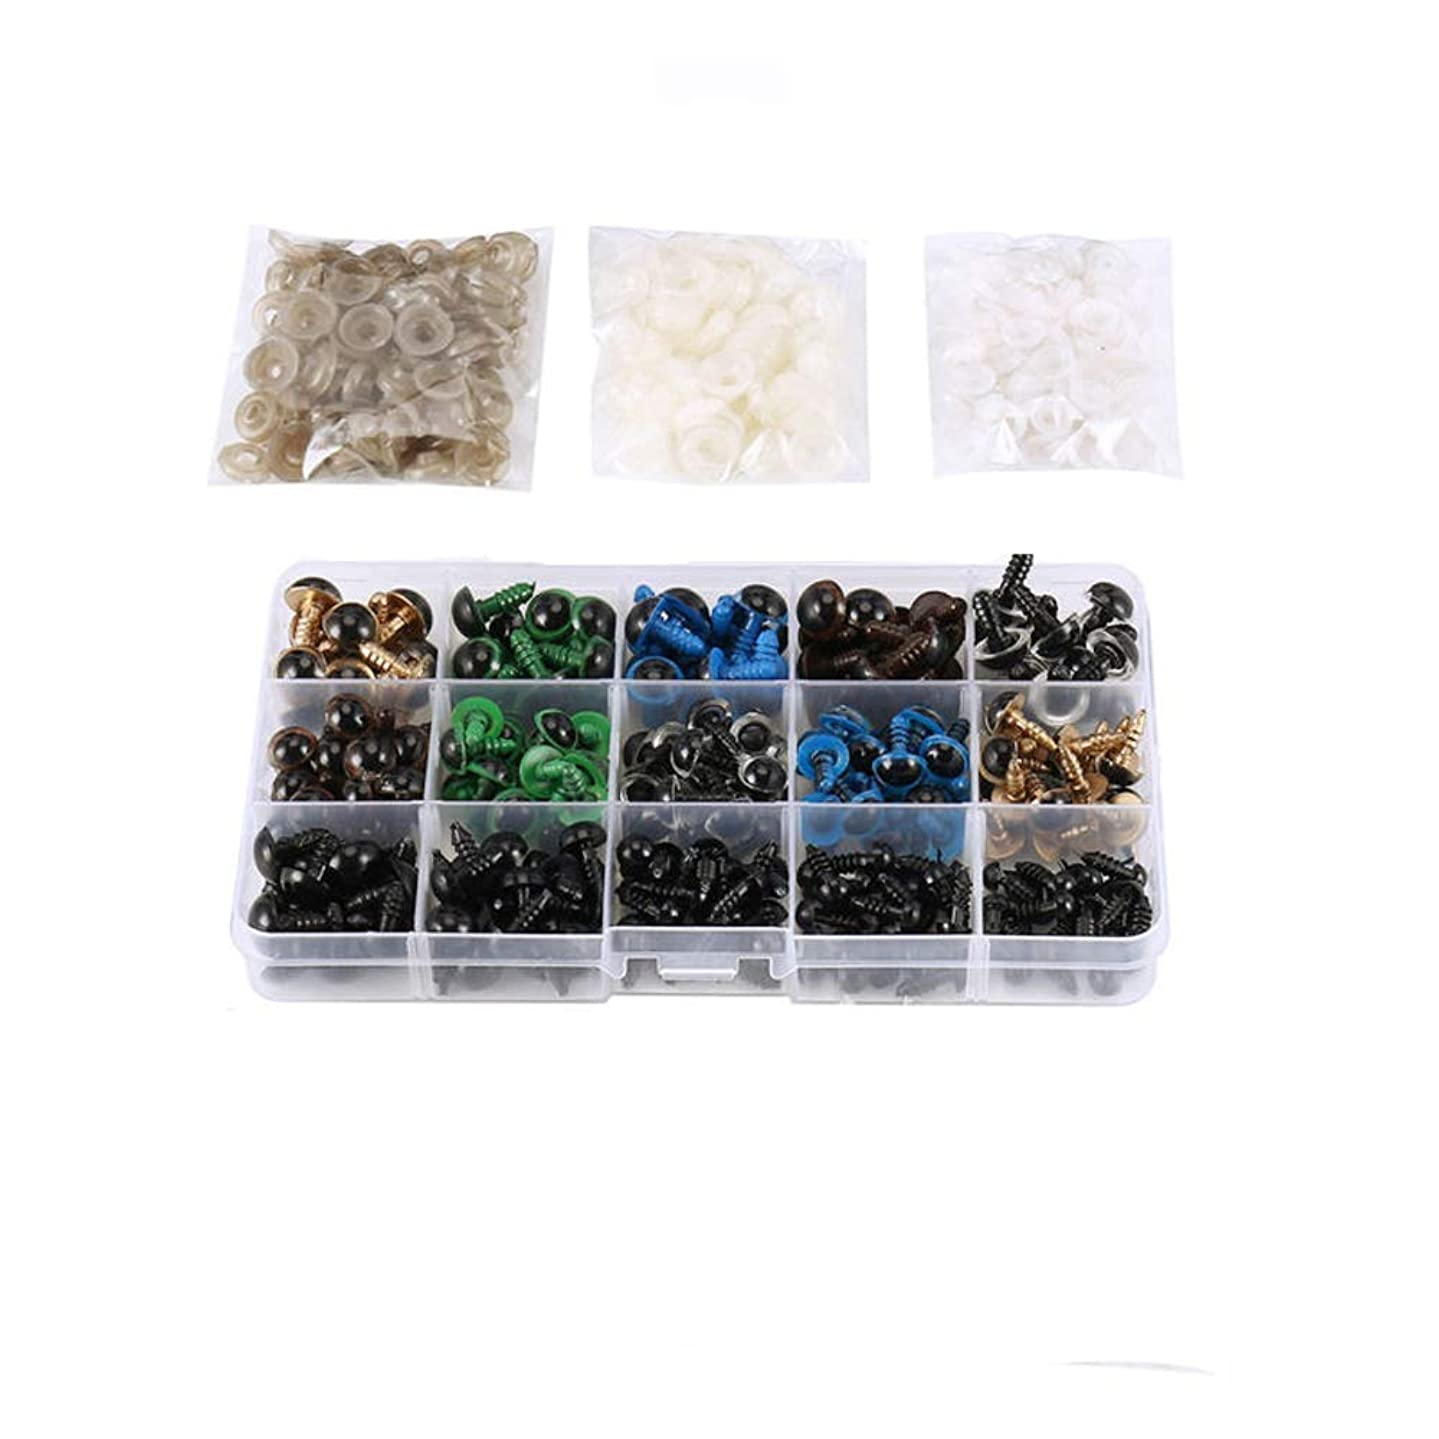 Eyech 264PC Colorful Plastic Safety Eyes with Washers for Making Toys Bear, Doll, Puppet, Plush Animal DIY Crafts (6-12mm)